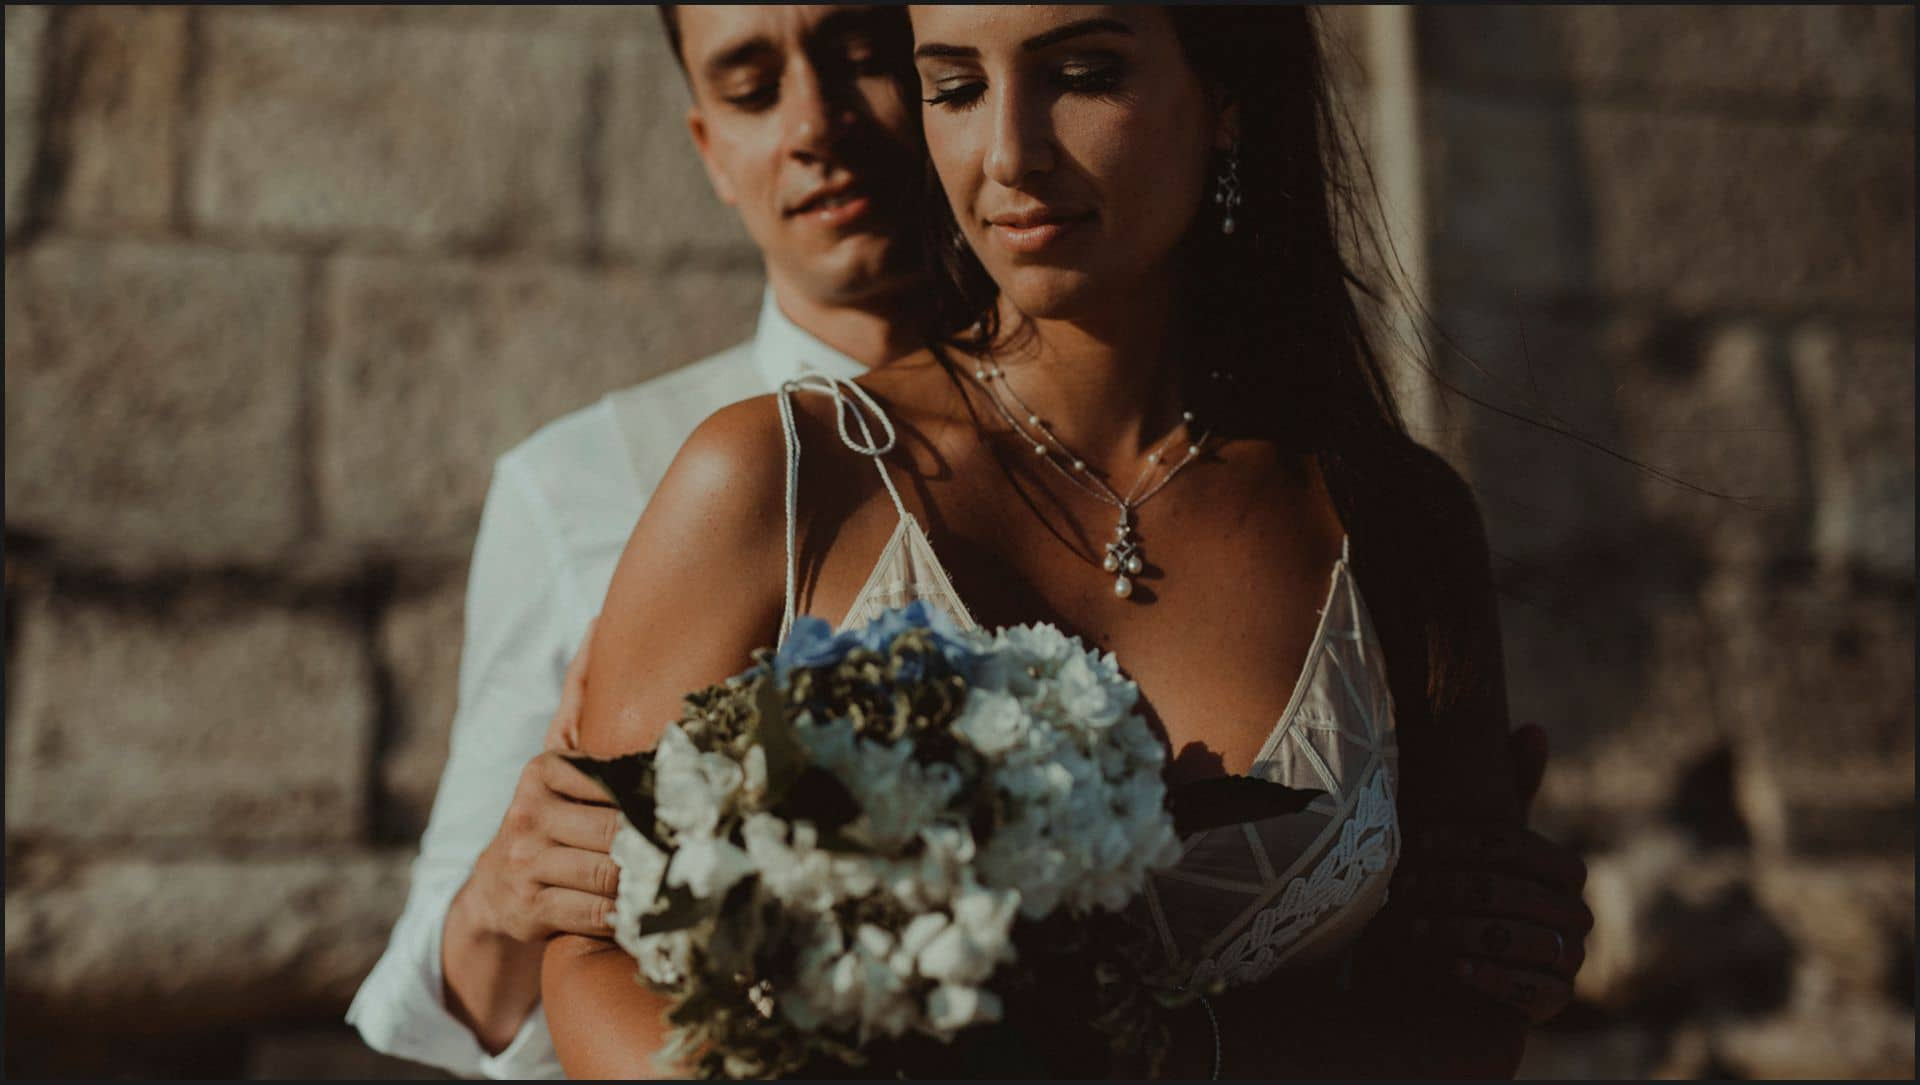 brazilian couple, bouquet, flowers, sunset light, wedding in italy